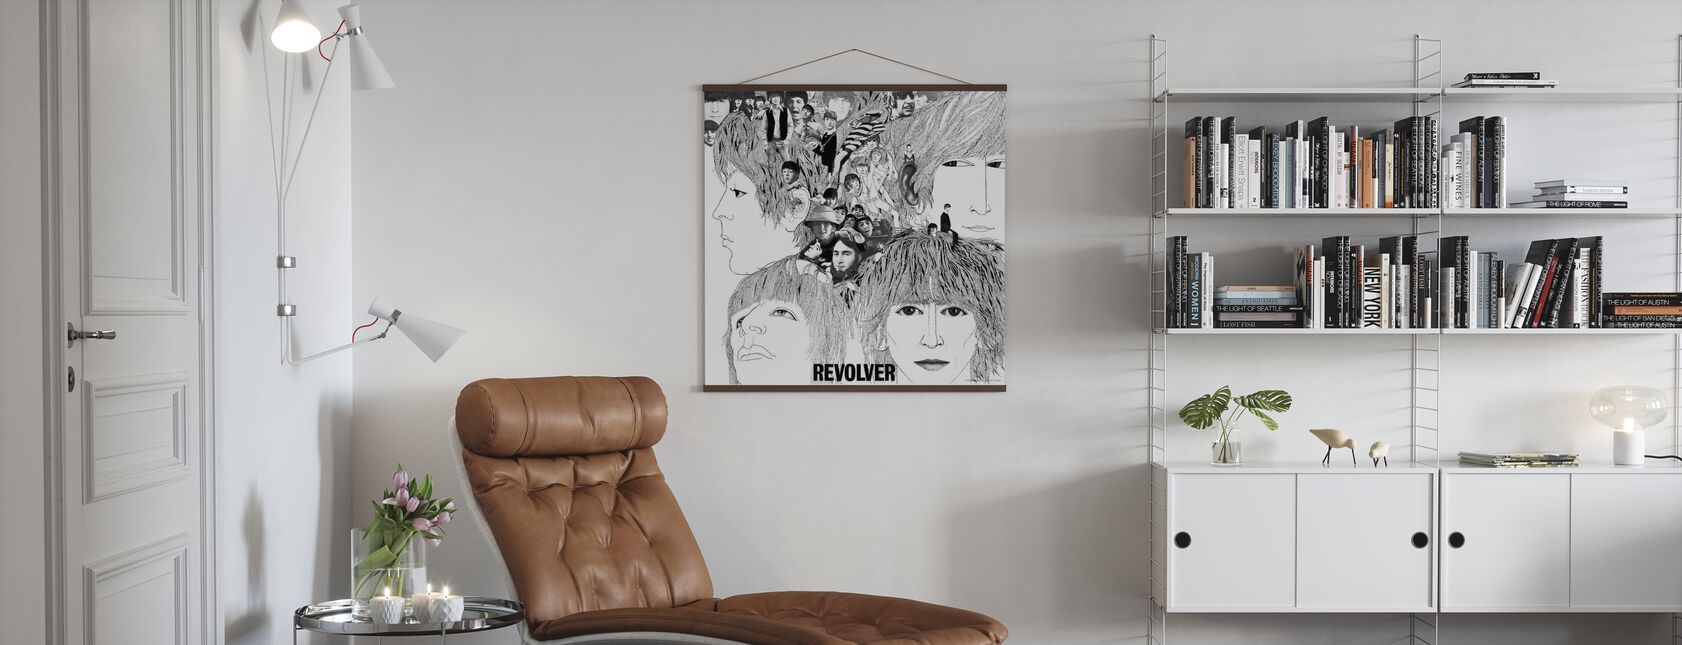 Beatles - Revolver - Poster - Woonkamer